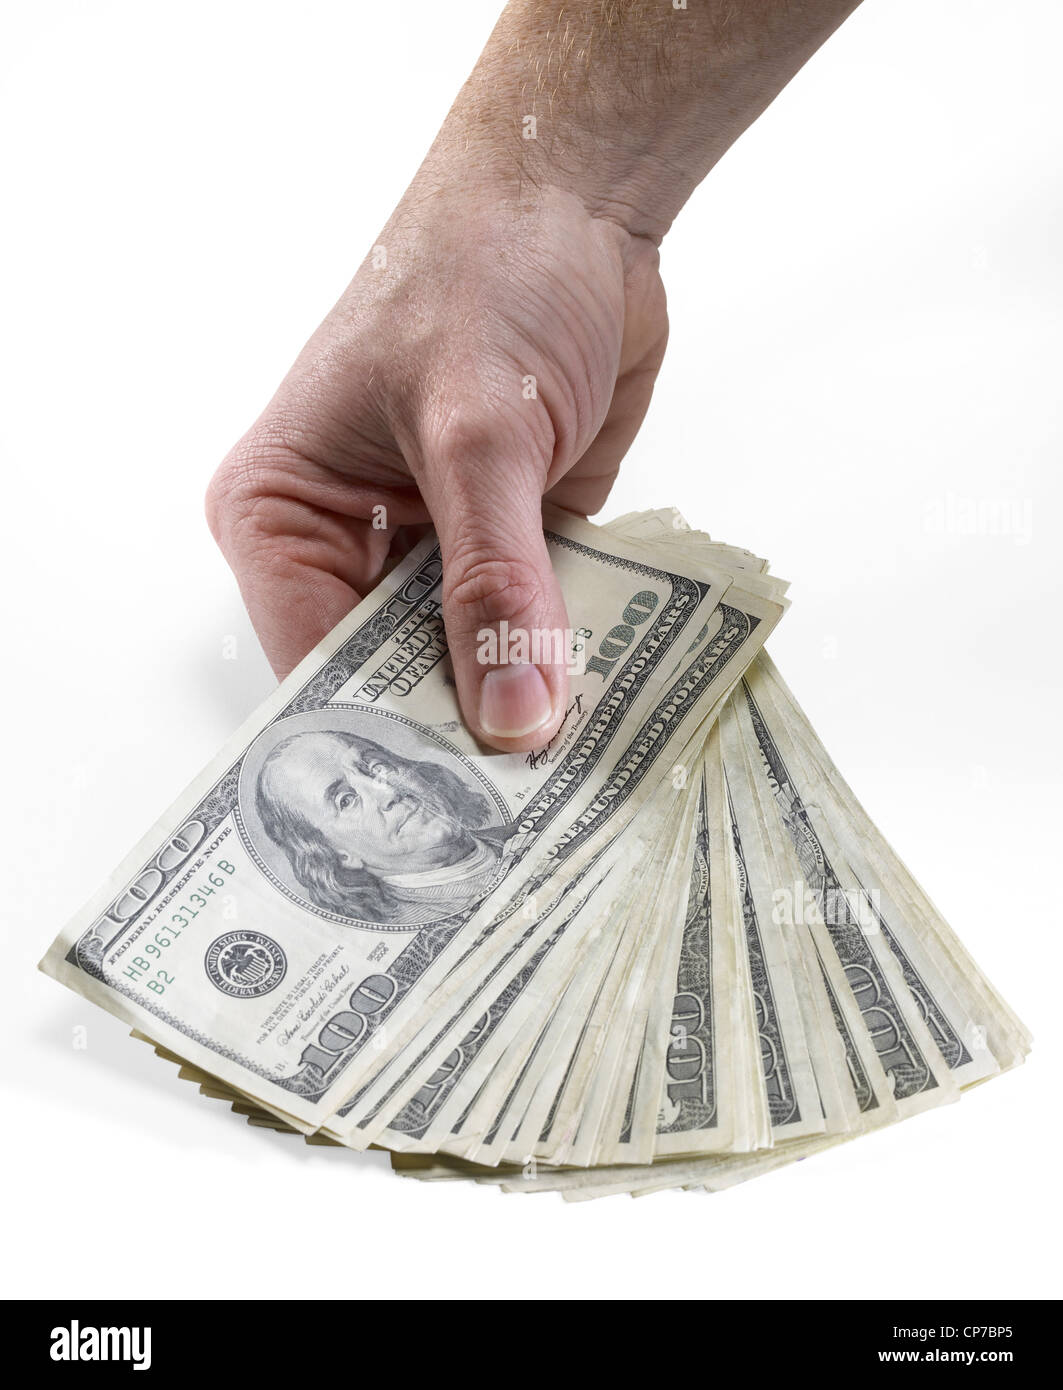 Hand Holding American One Hundred Dollar Bills - Stock Image